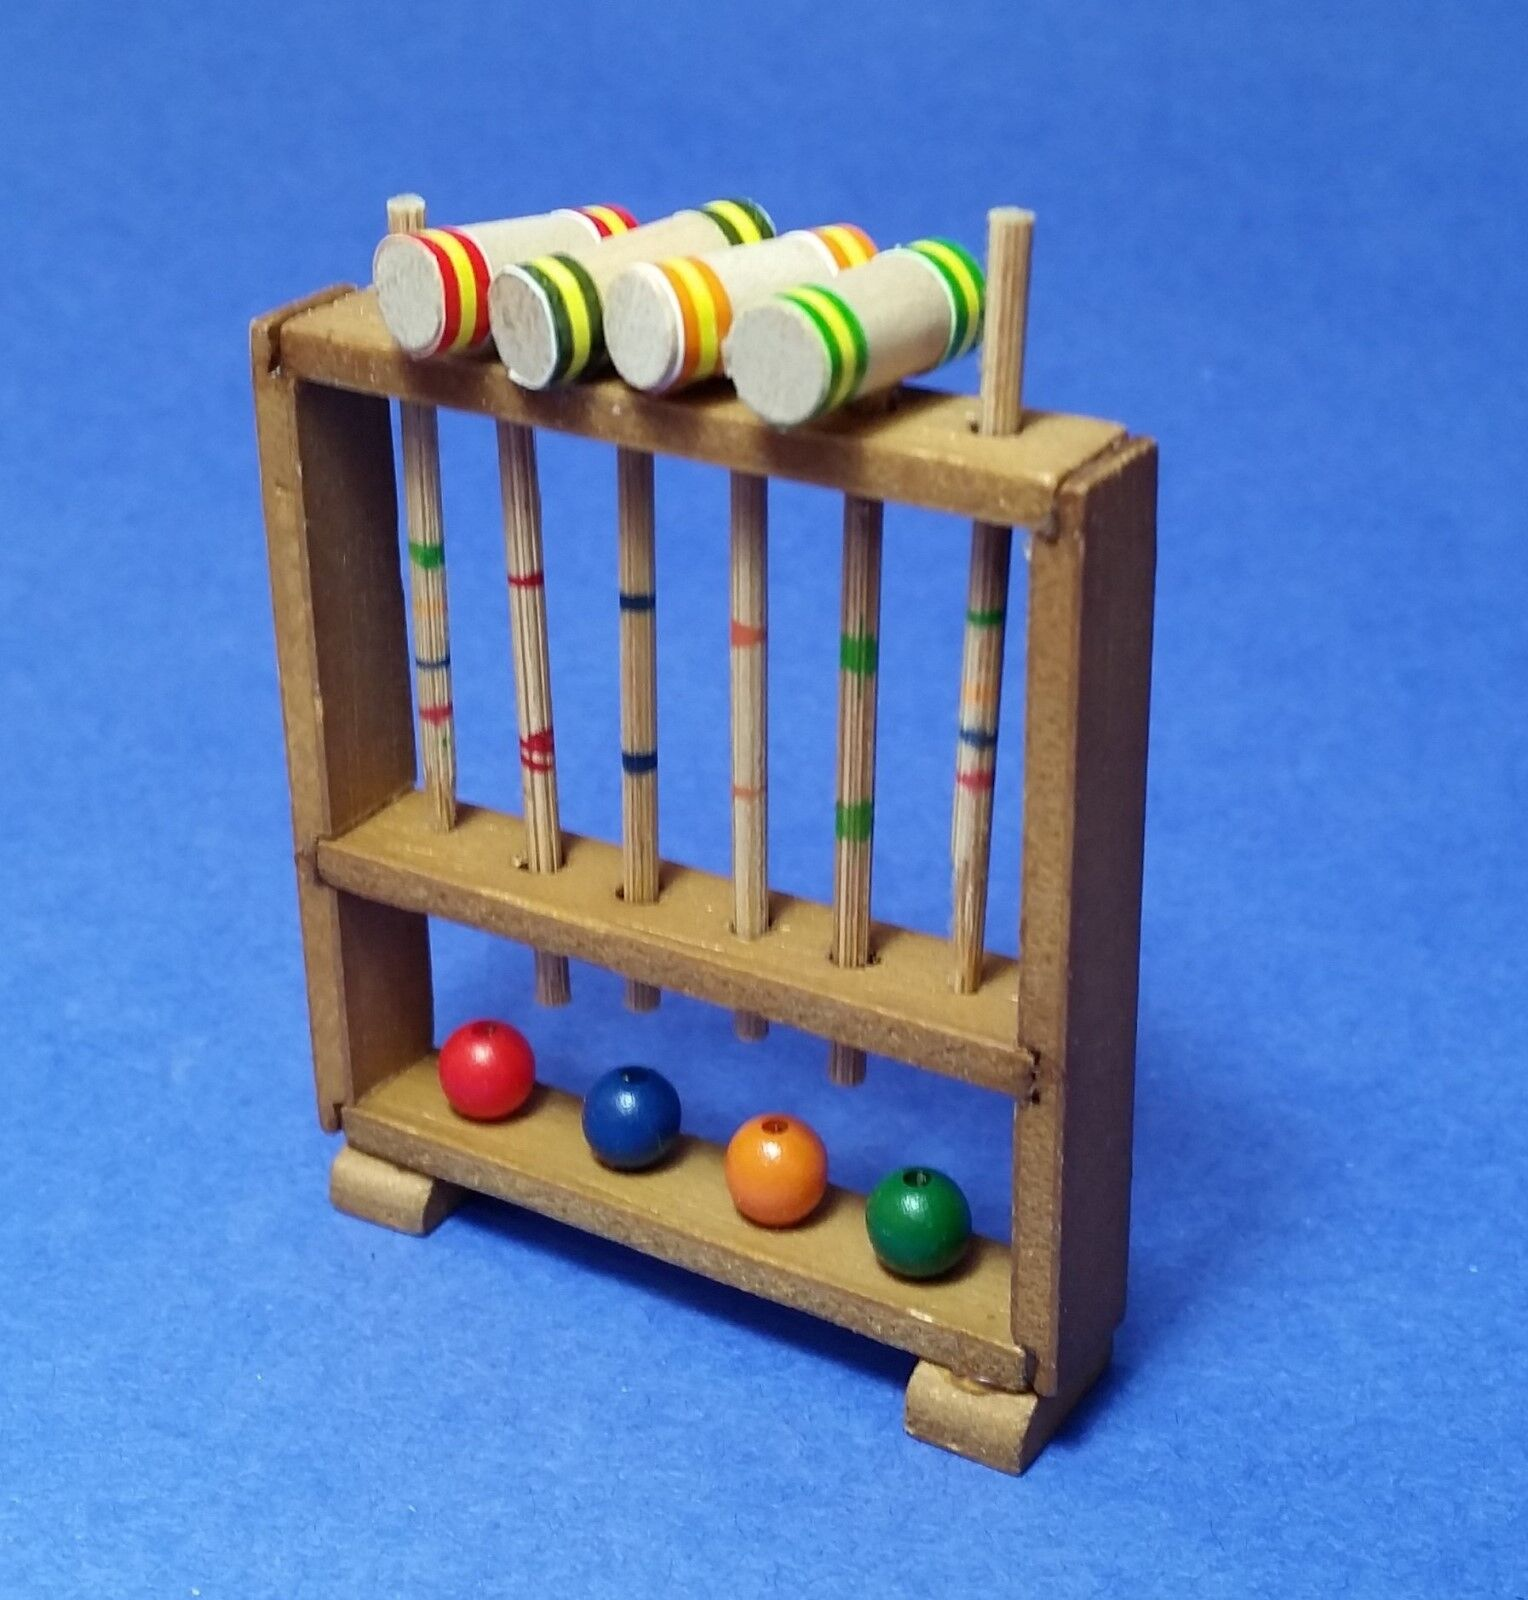 1:12 Scale Wooden Croquet Set Tumdee Dolls House Miniature Toy Garden Accessory